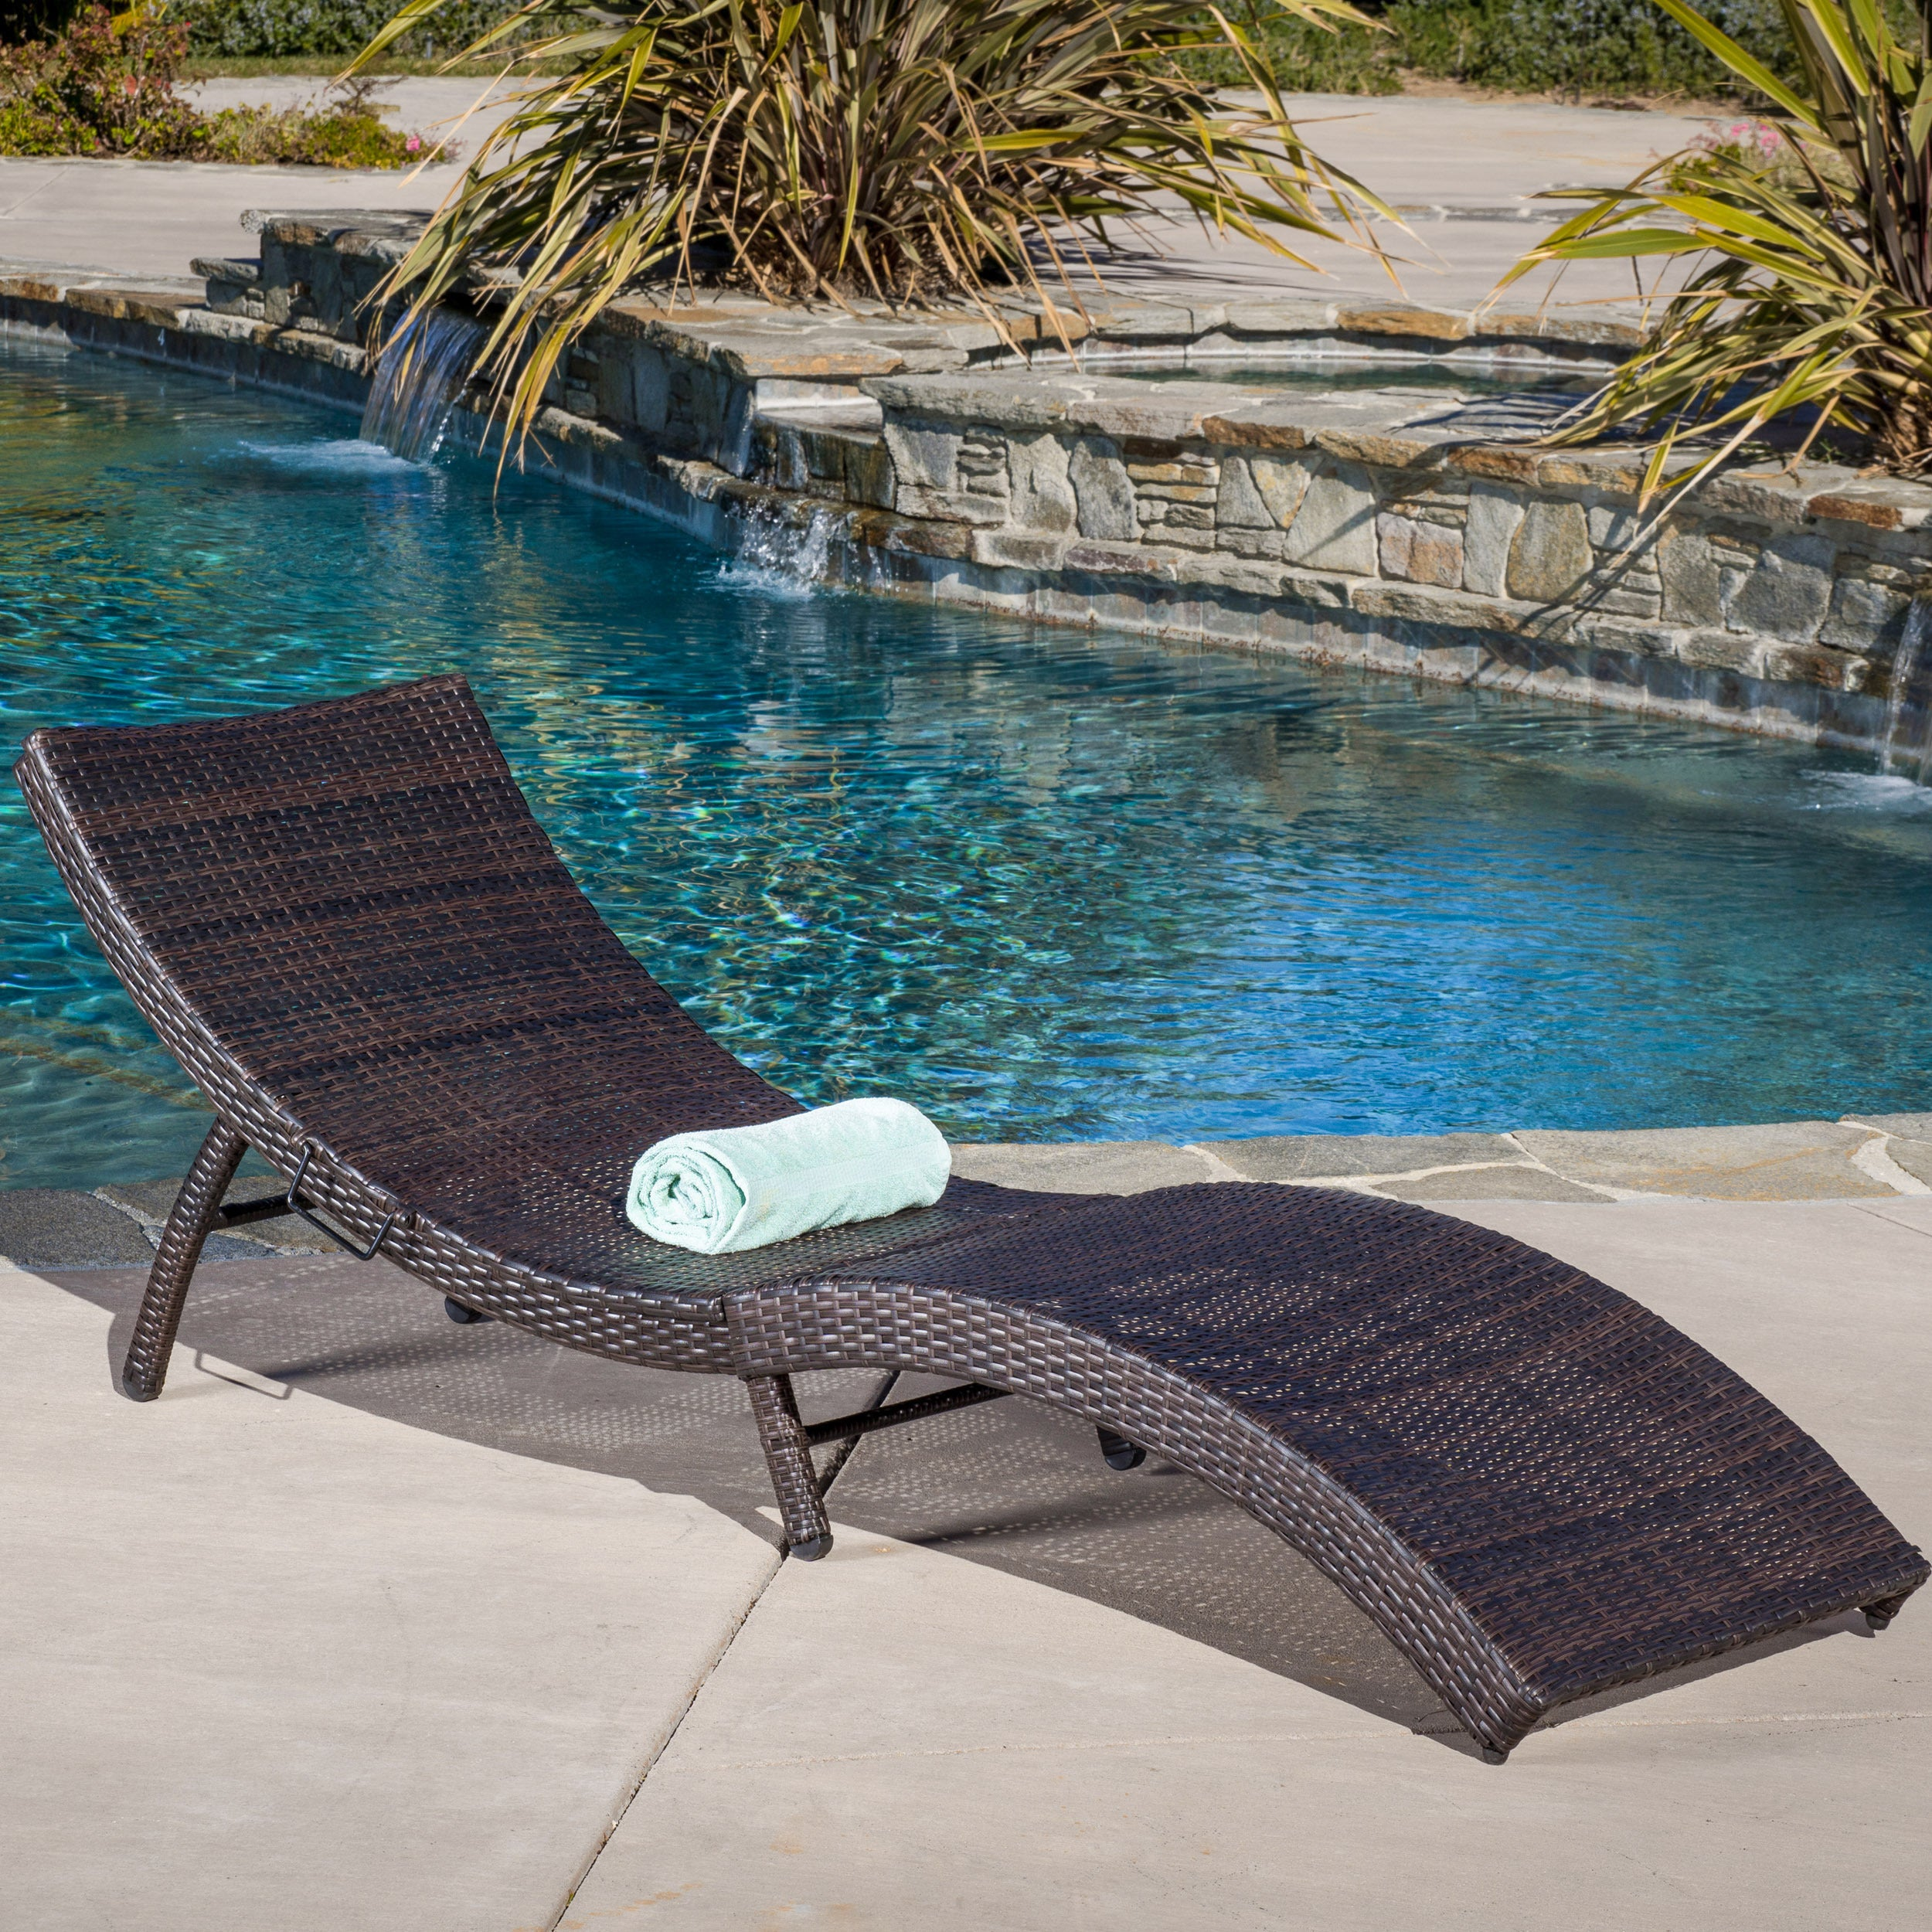 Peachy Acapulco Outdoor Wicker Folding Chaise Lounge By Christopher Knight Home N A Camellatalisay Diy Chair Ideas Camellatalisaycom